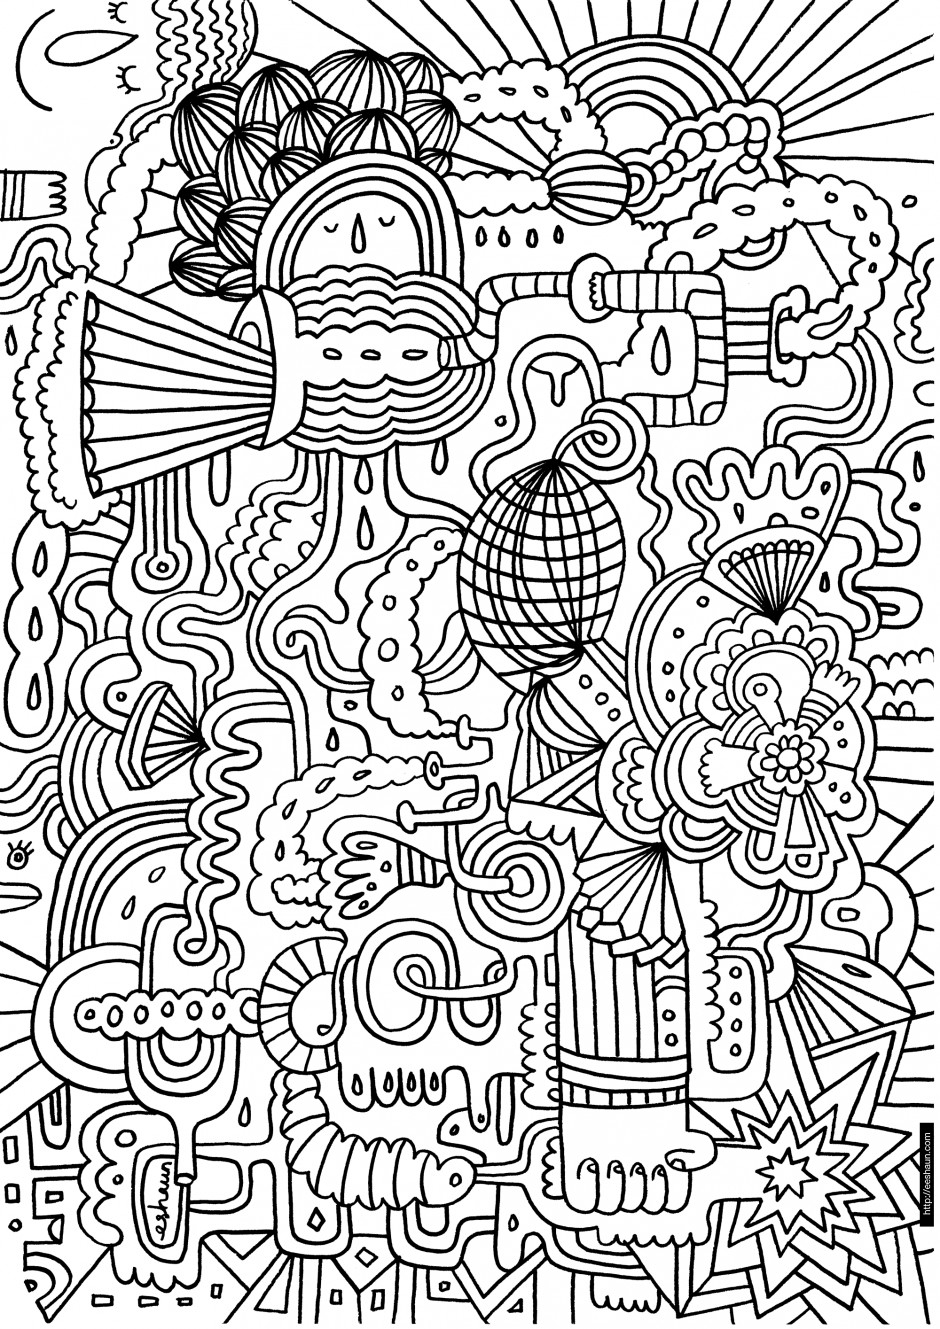 Coloring Sheets For Teenage Girls  Coloring Pages for Teen Girls Best Cool Funny